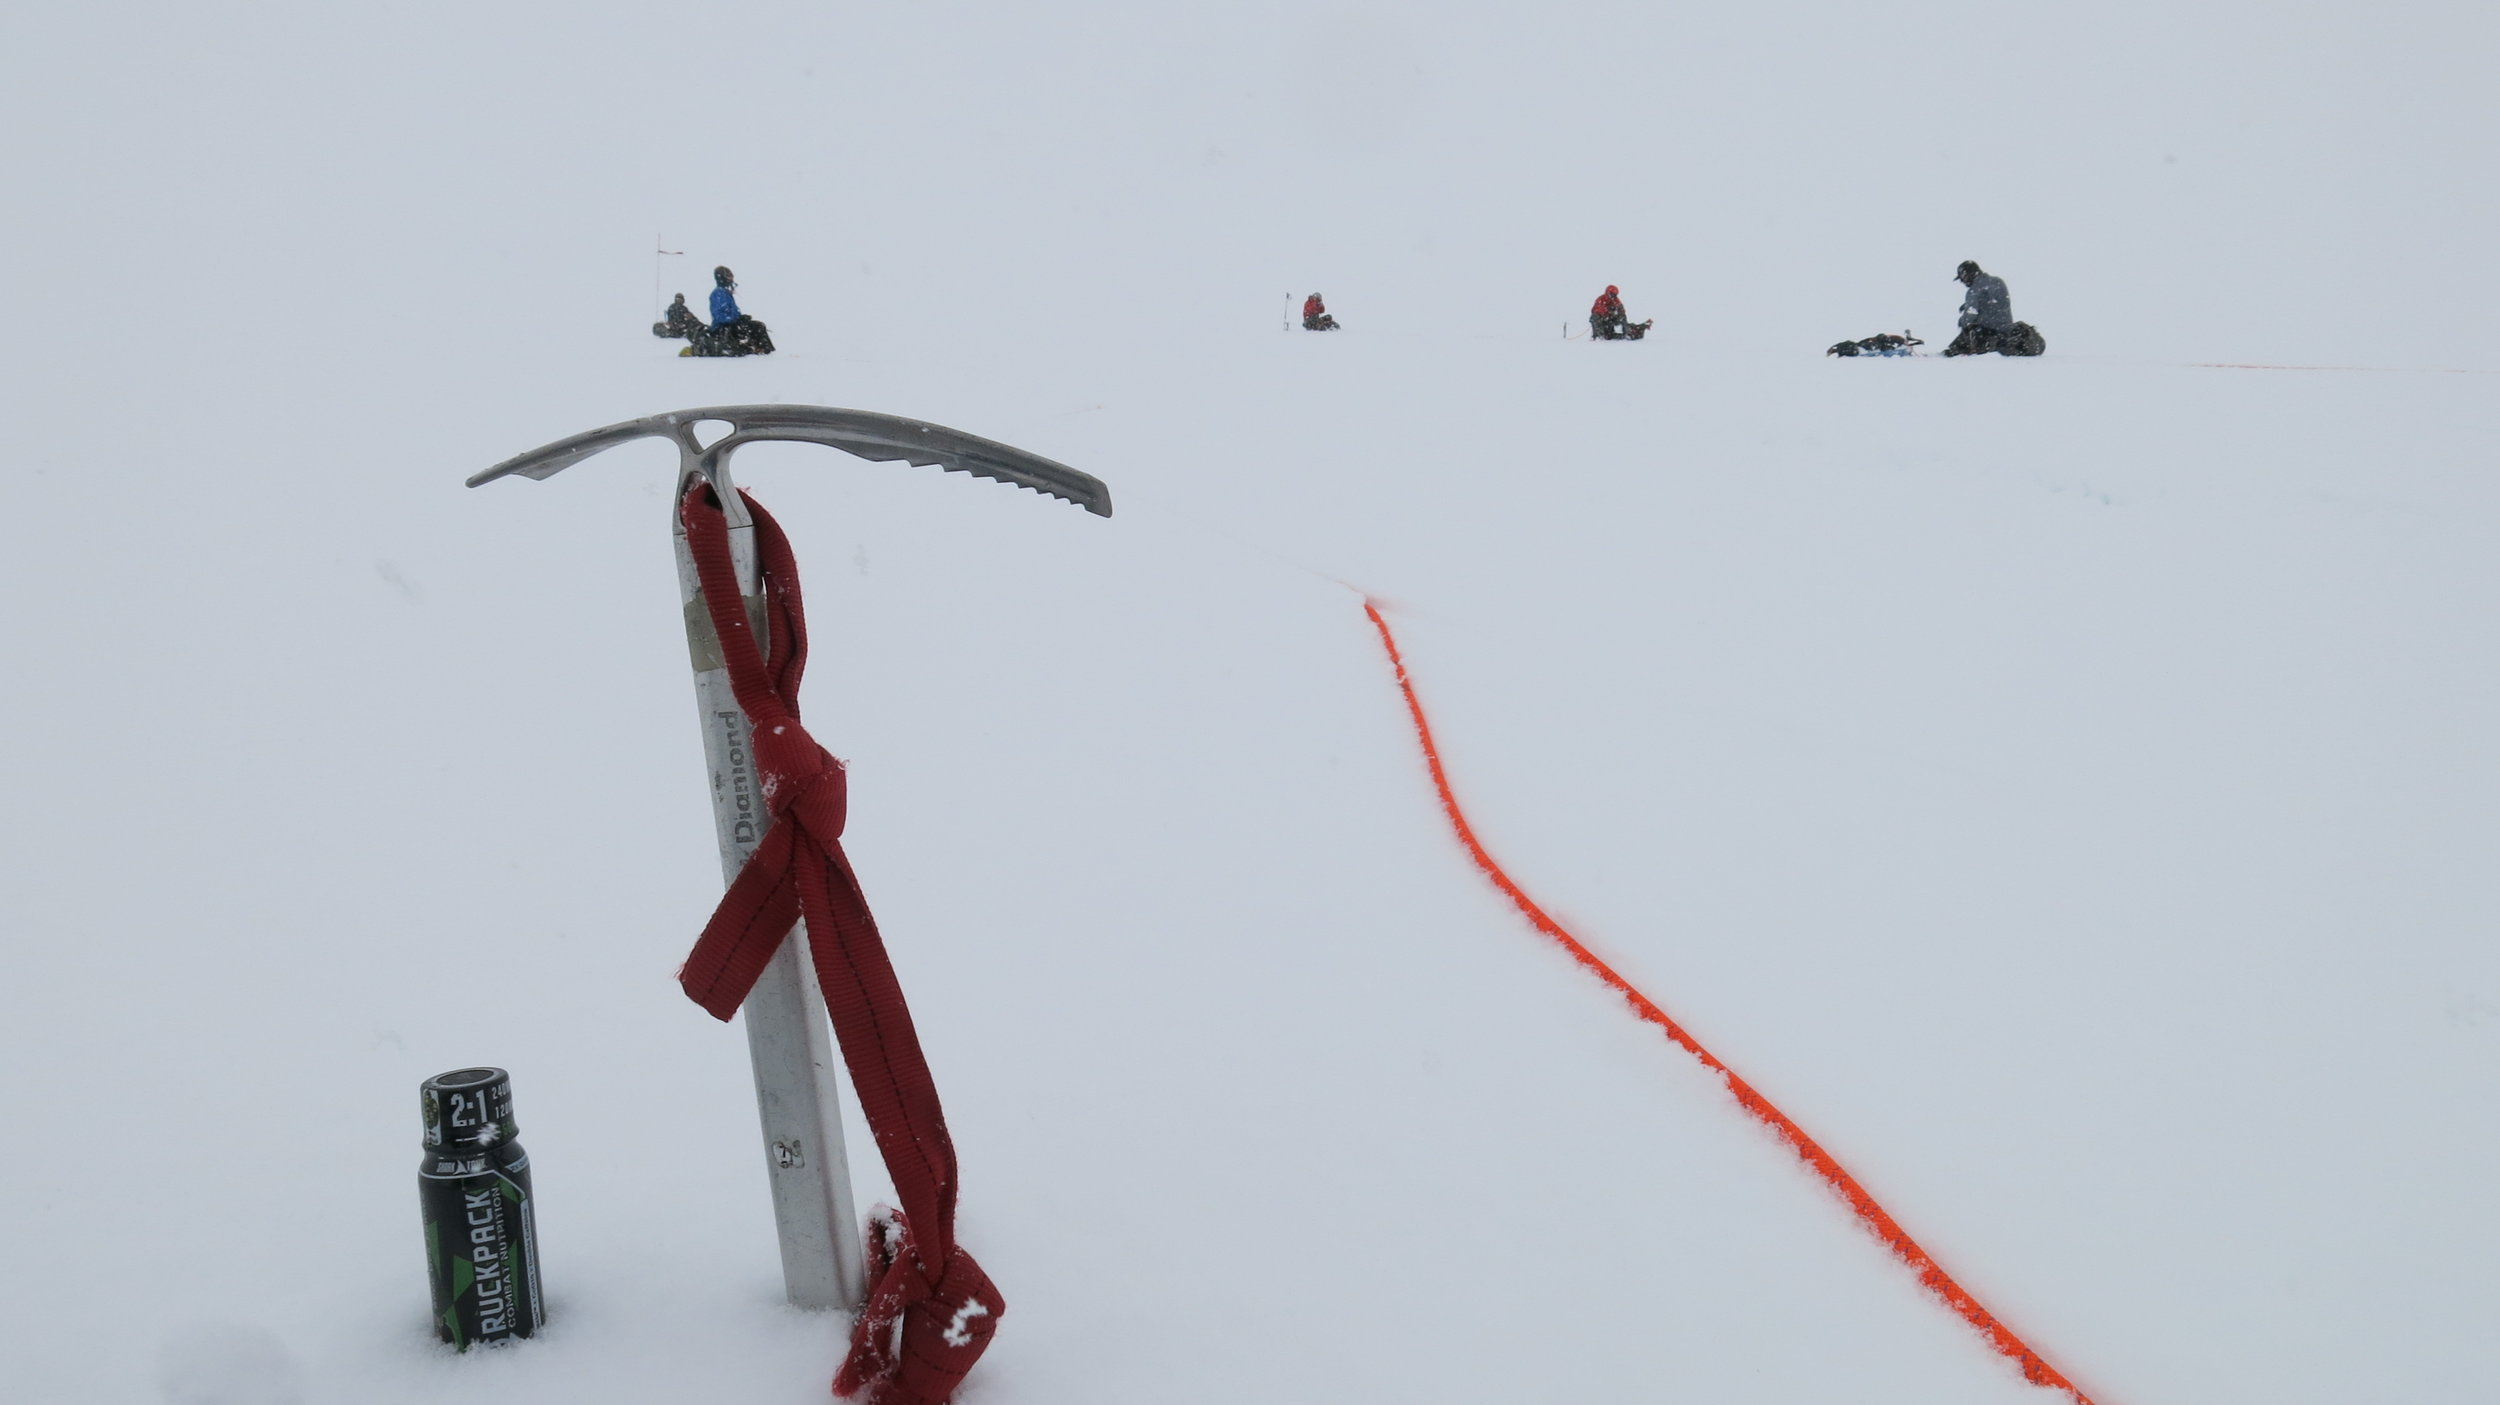 On a rope team knowing where to be can mean the difference between life and death, yet everyone has to stay so far apart that they cannot communicate. Sounds a little like leading a global team, right? How could this analogy help you enjoy that challenge?